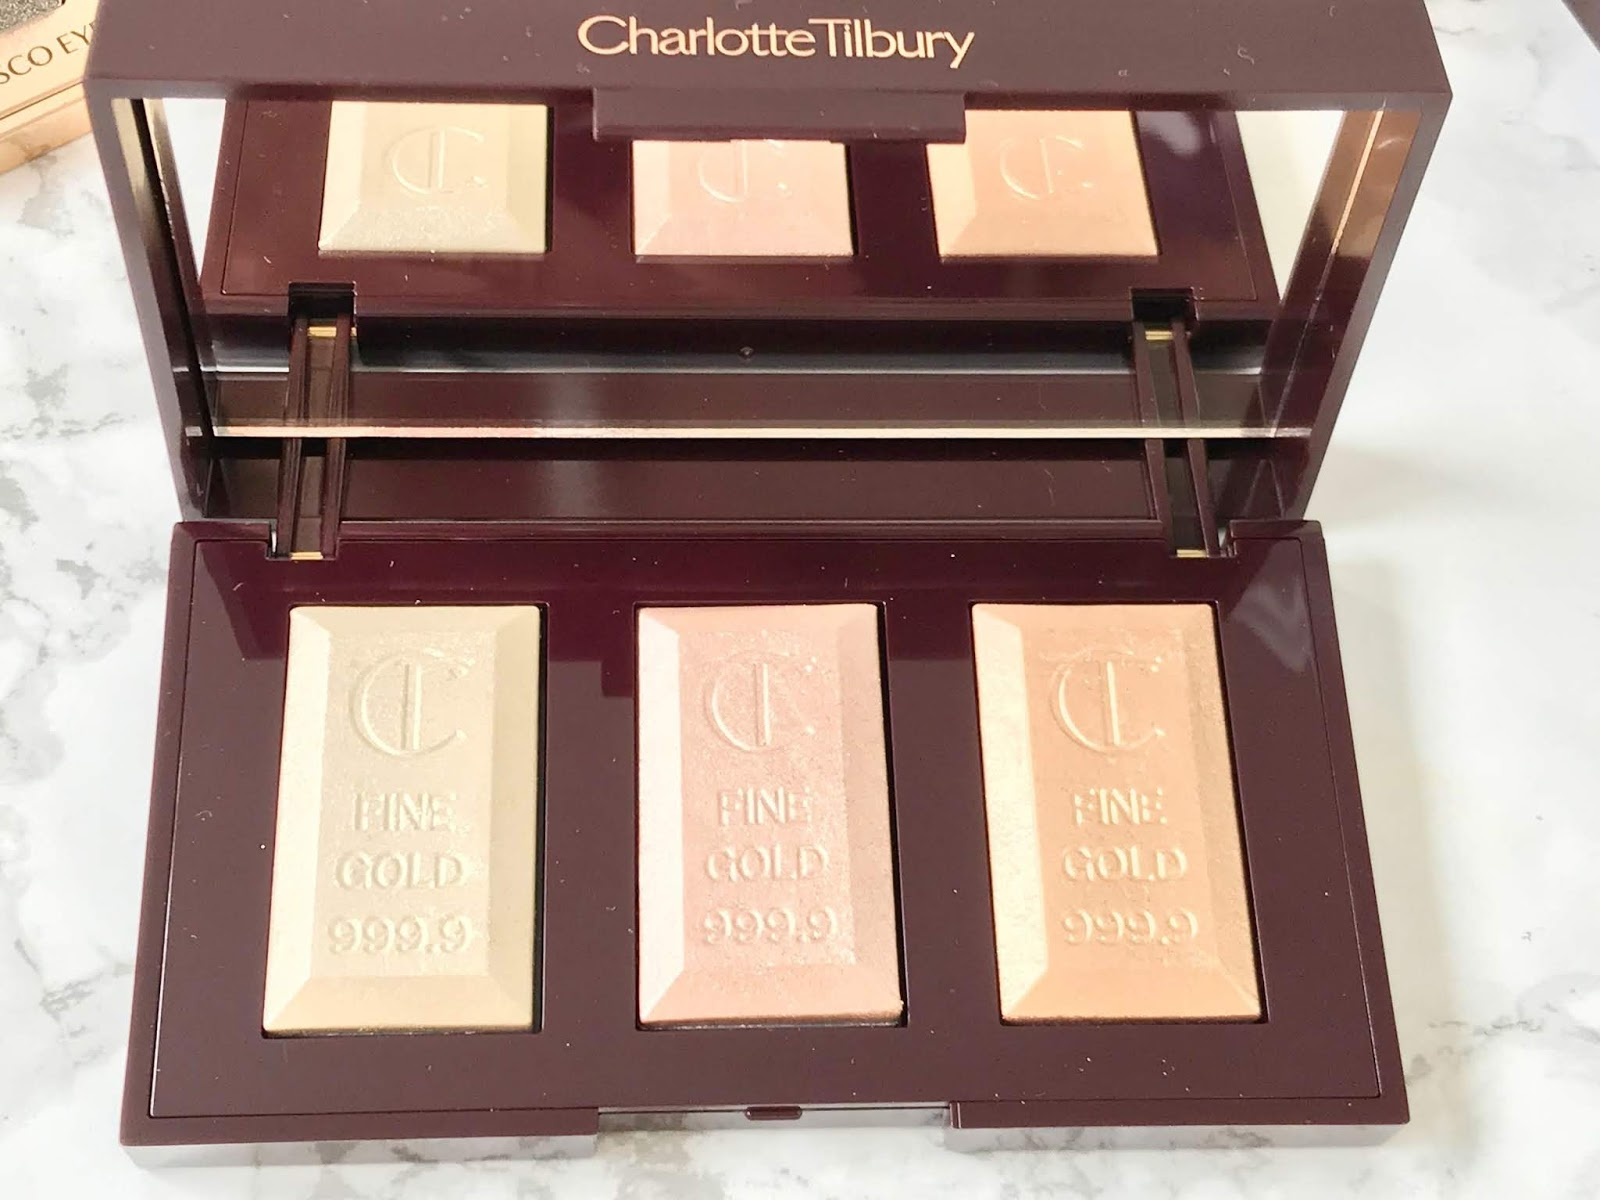 Charlotte Tilbury Bar of Gold Palette Review & Swatches